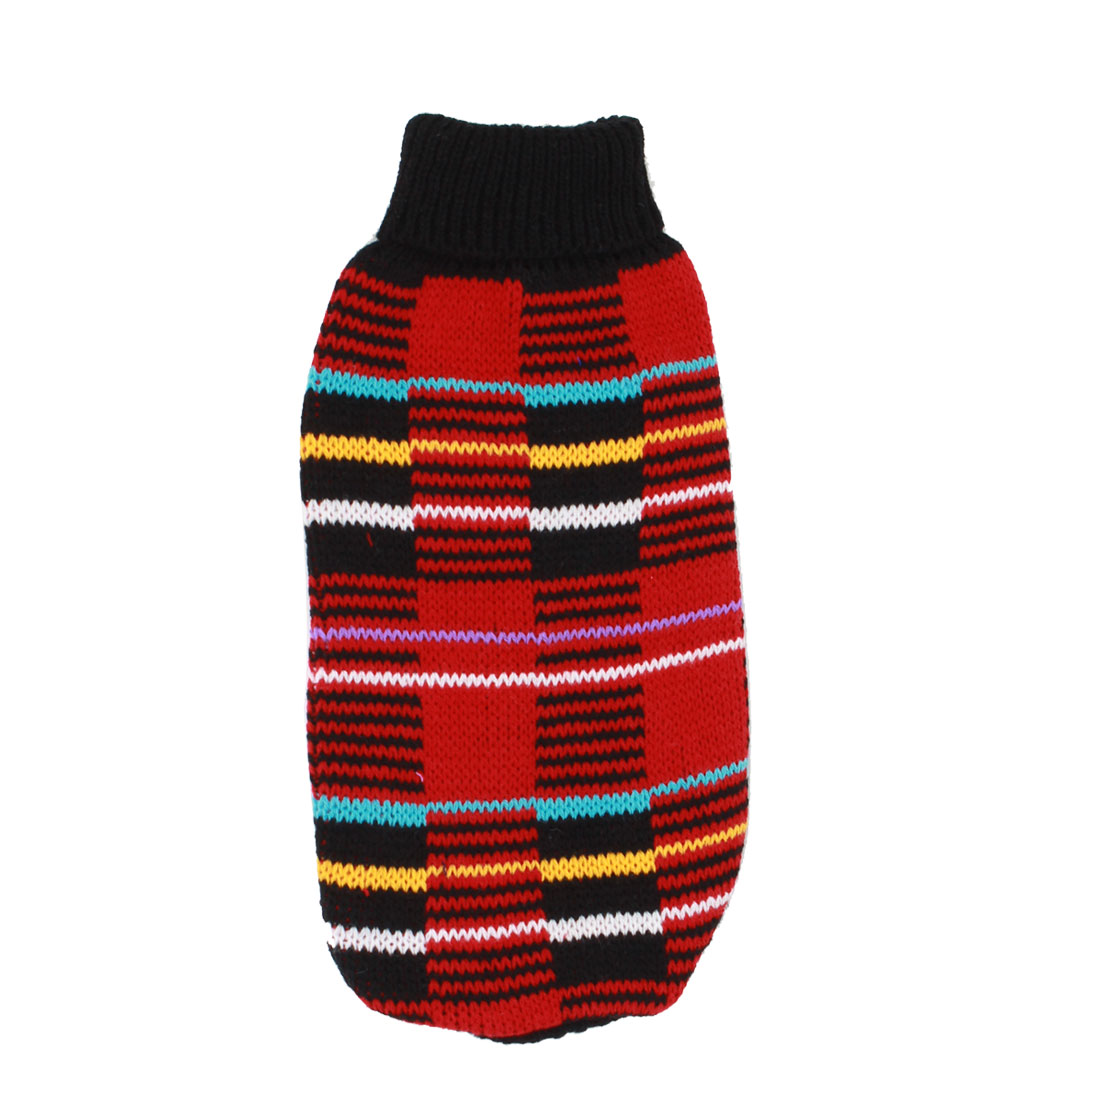 Pet Dog Yorkie Ribbed Cuff Knitwear Turtleneck Apparel Coat Sweater Red Black Size M